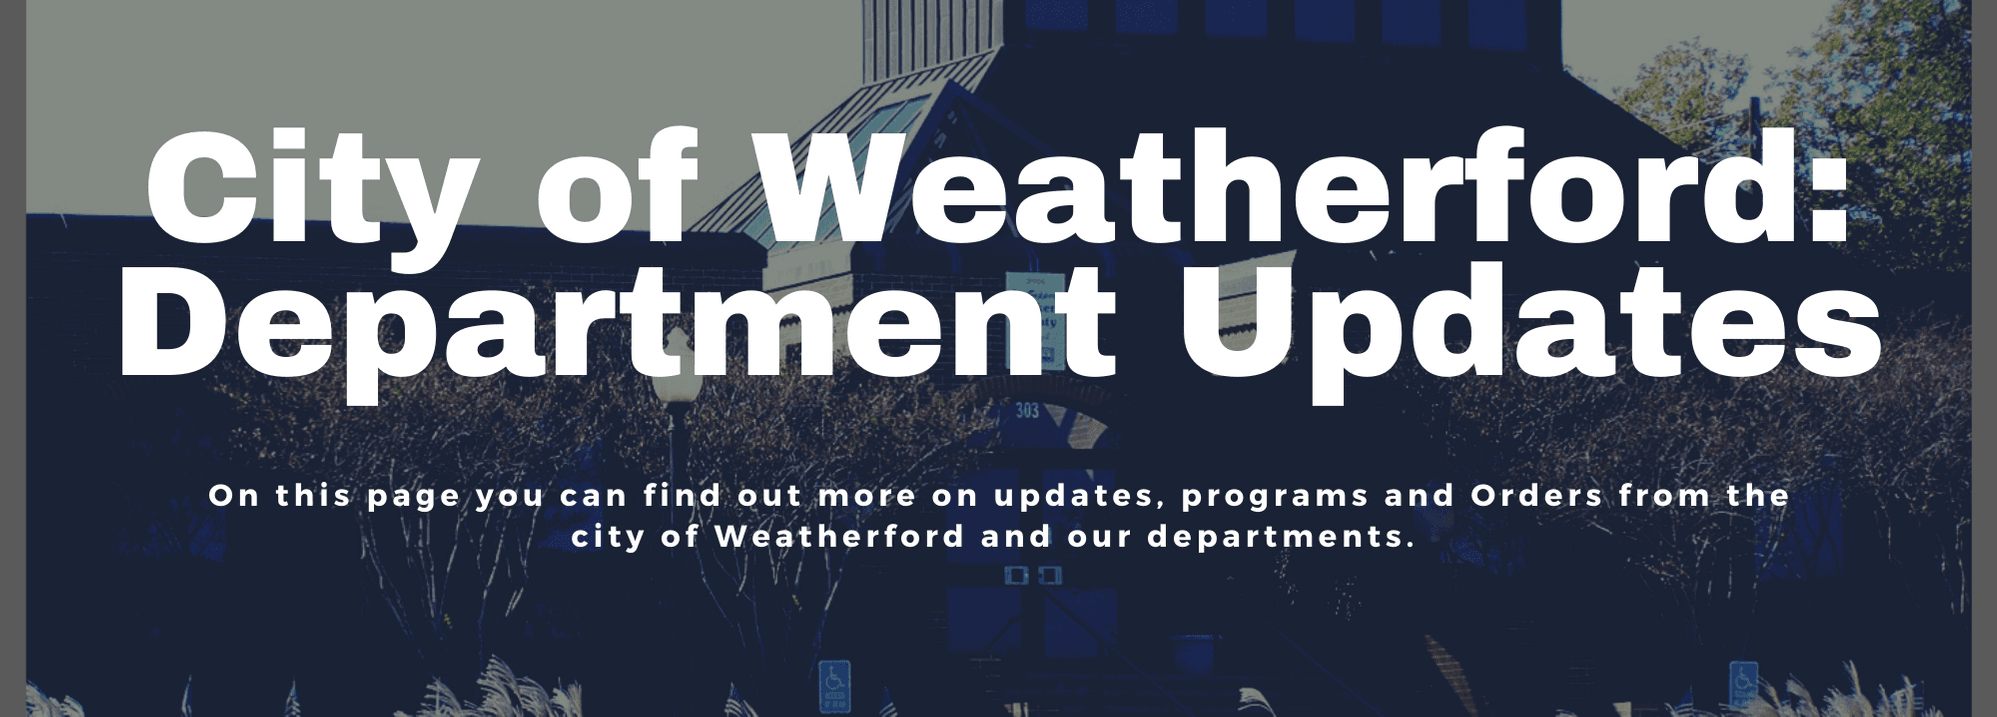 City of Weatherford Department Updates - COVID-19 - website banner